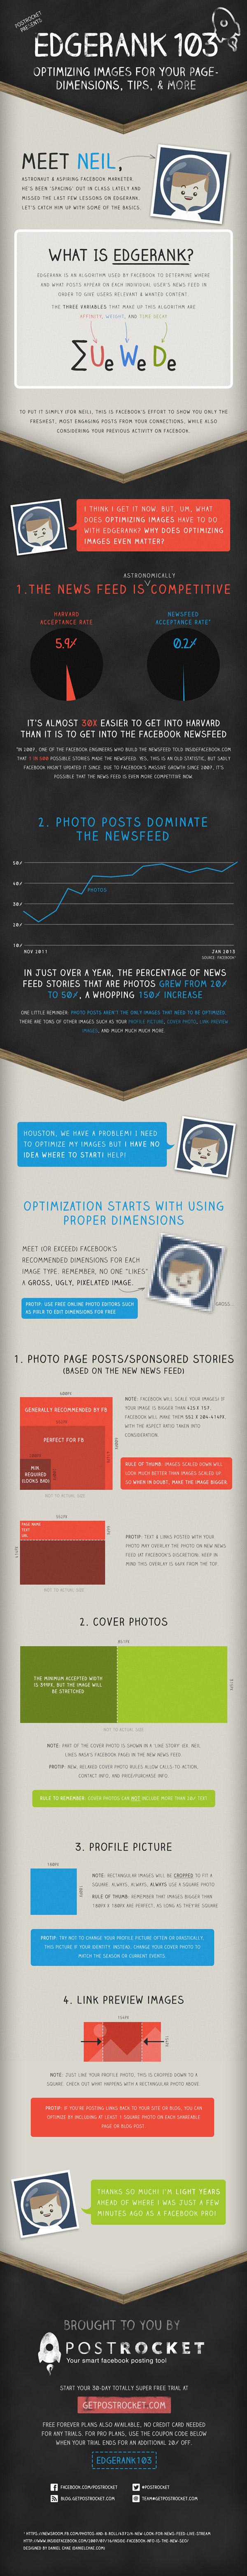 Optimizing Images for Your Facebook Page